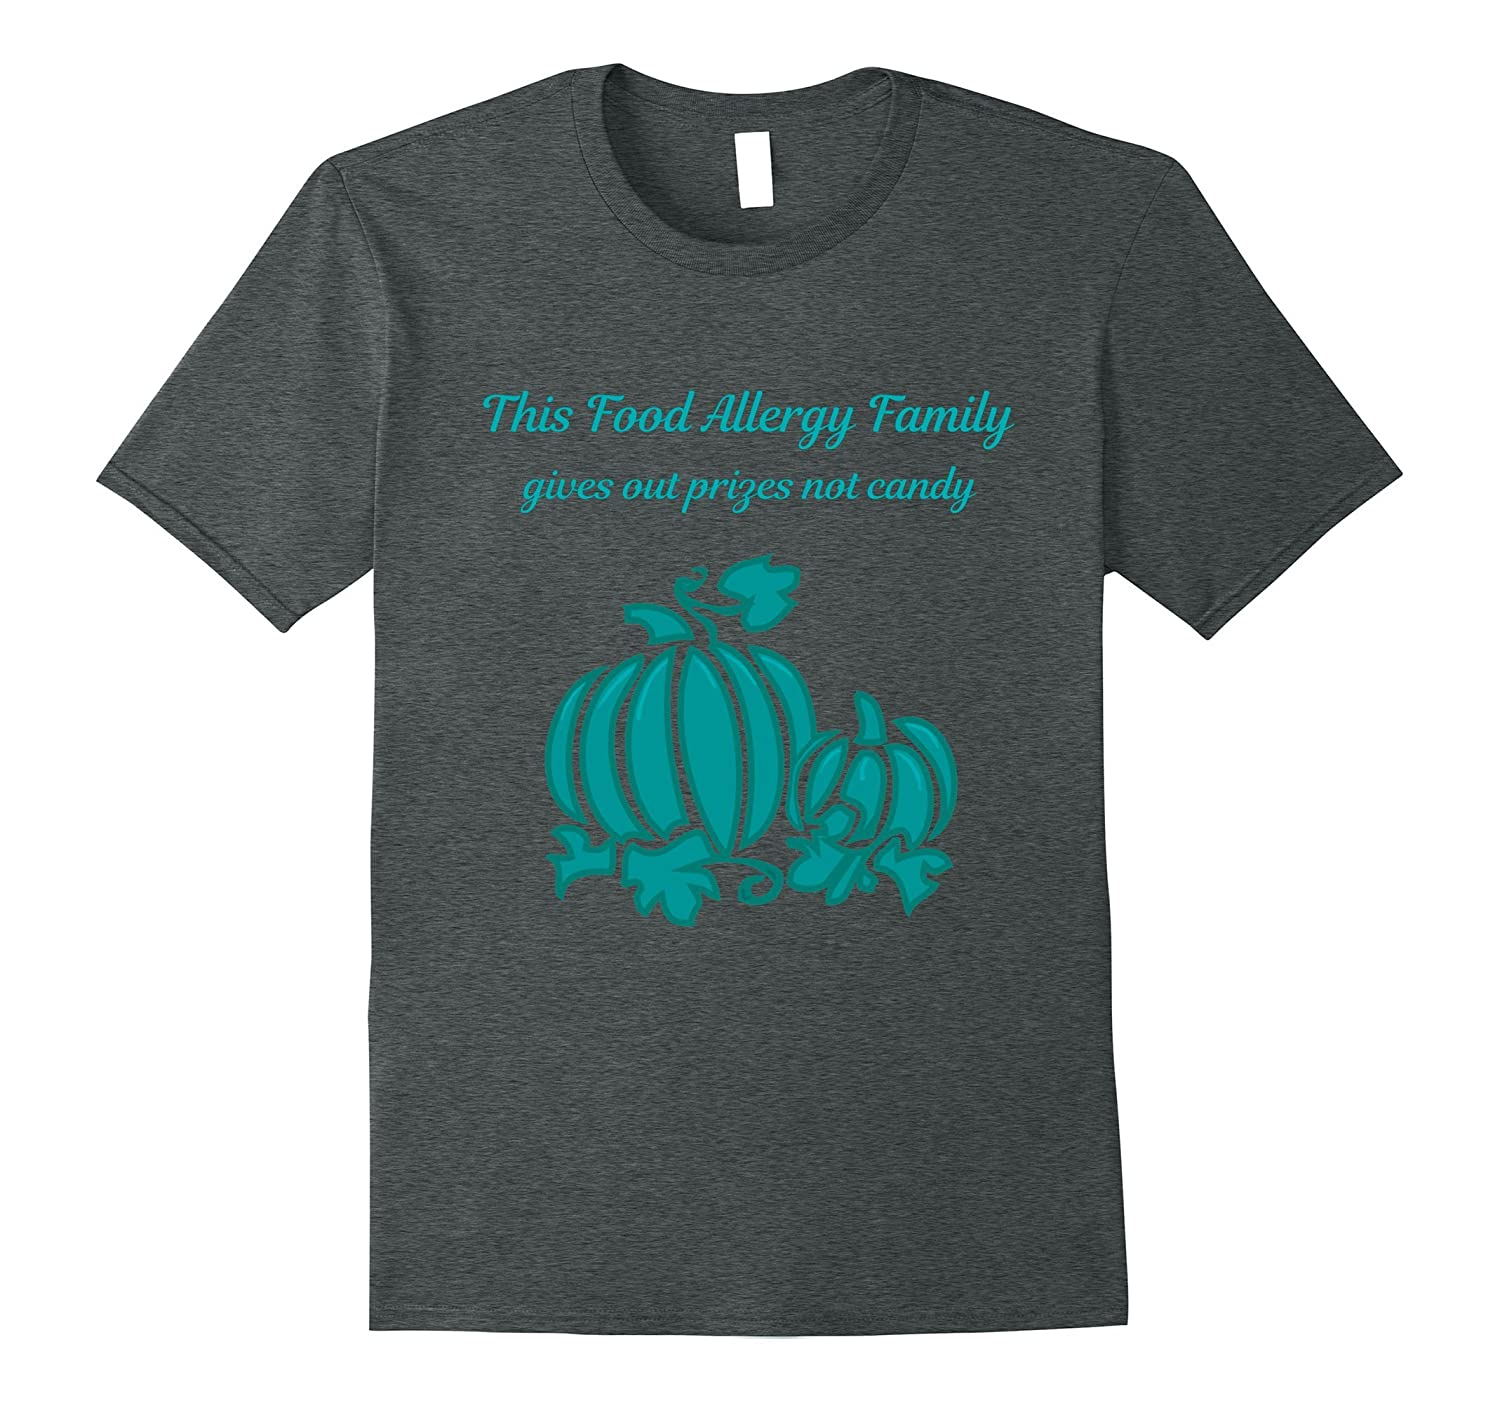 Food Allergies Shirt Halloween This Family gives out prizes-4LVS